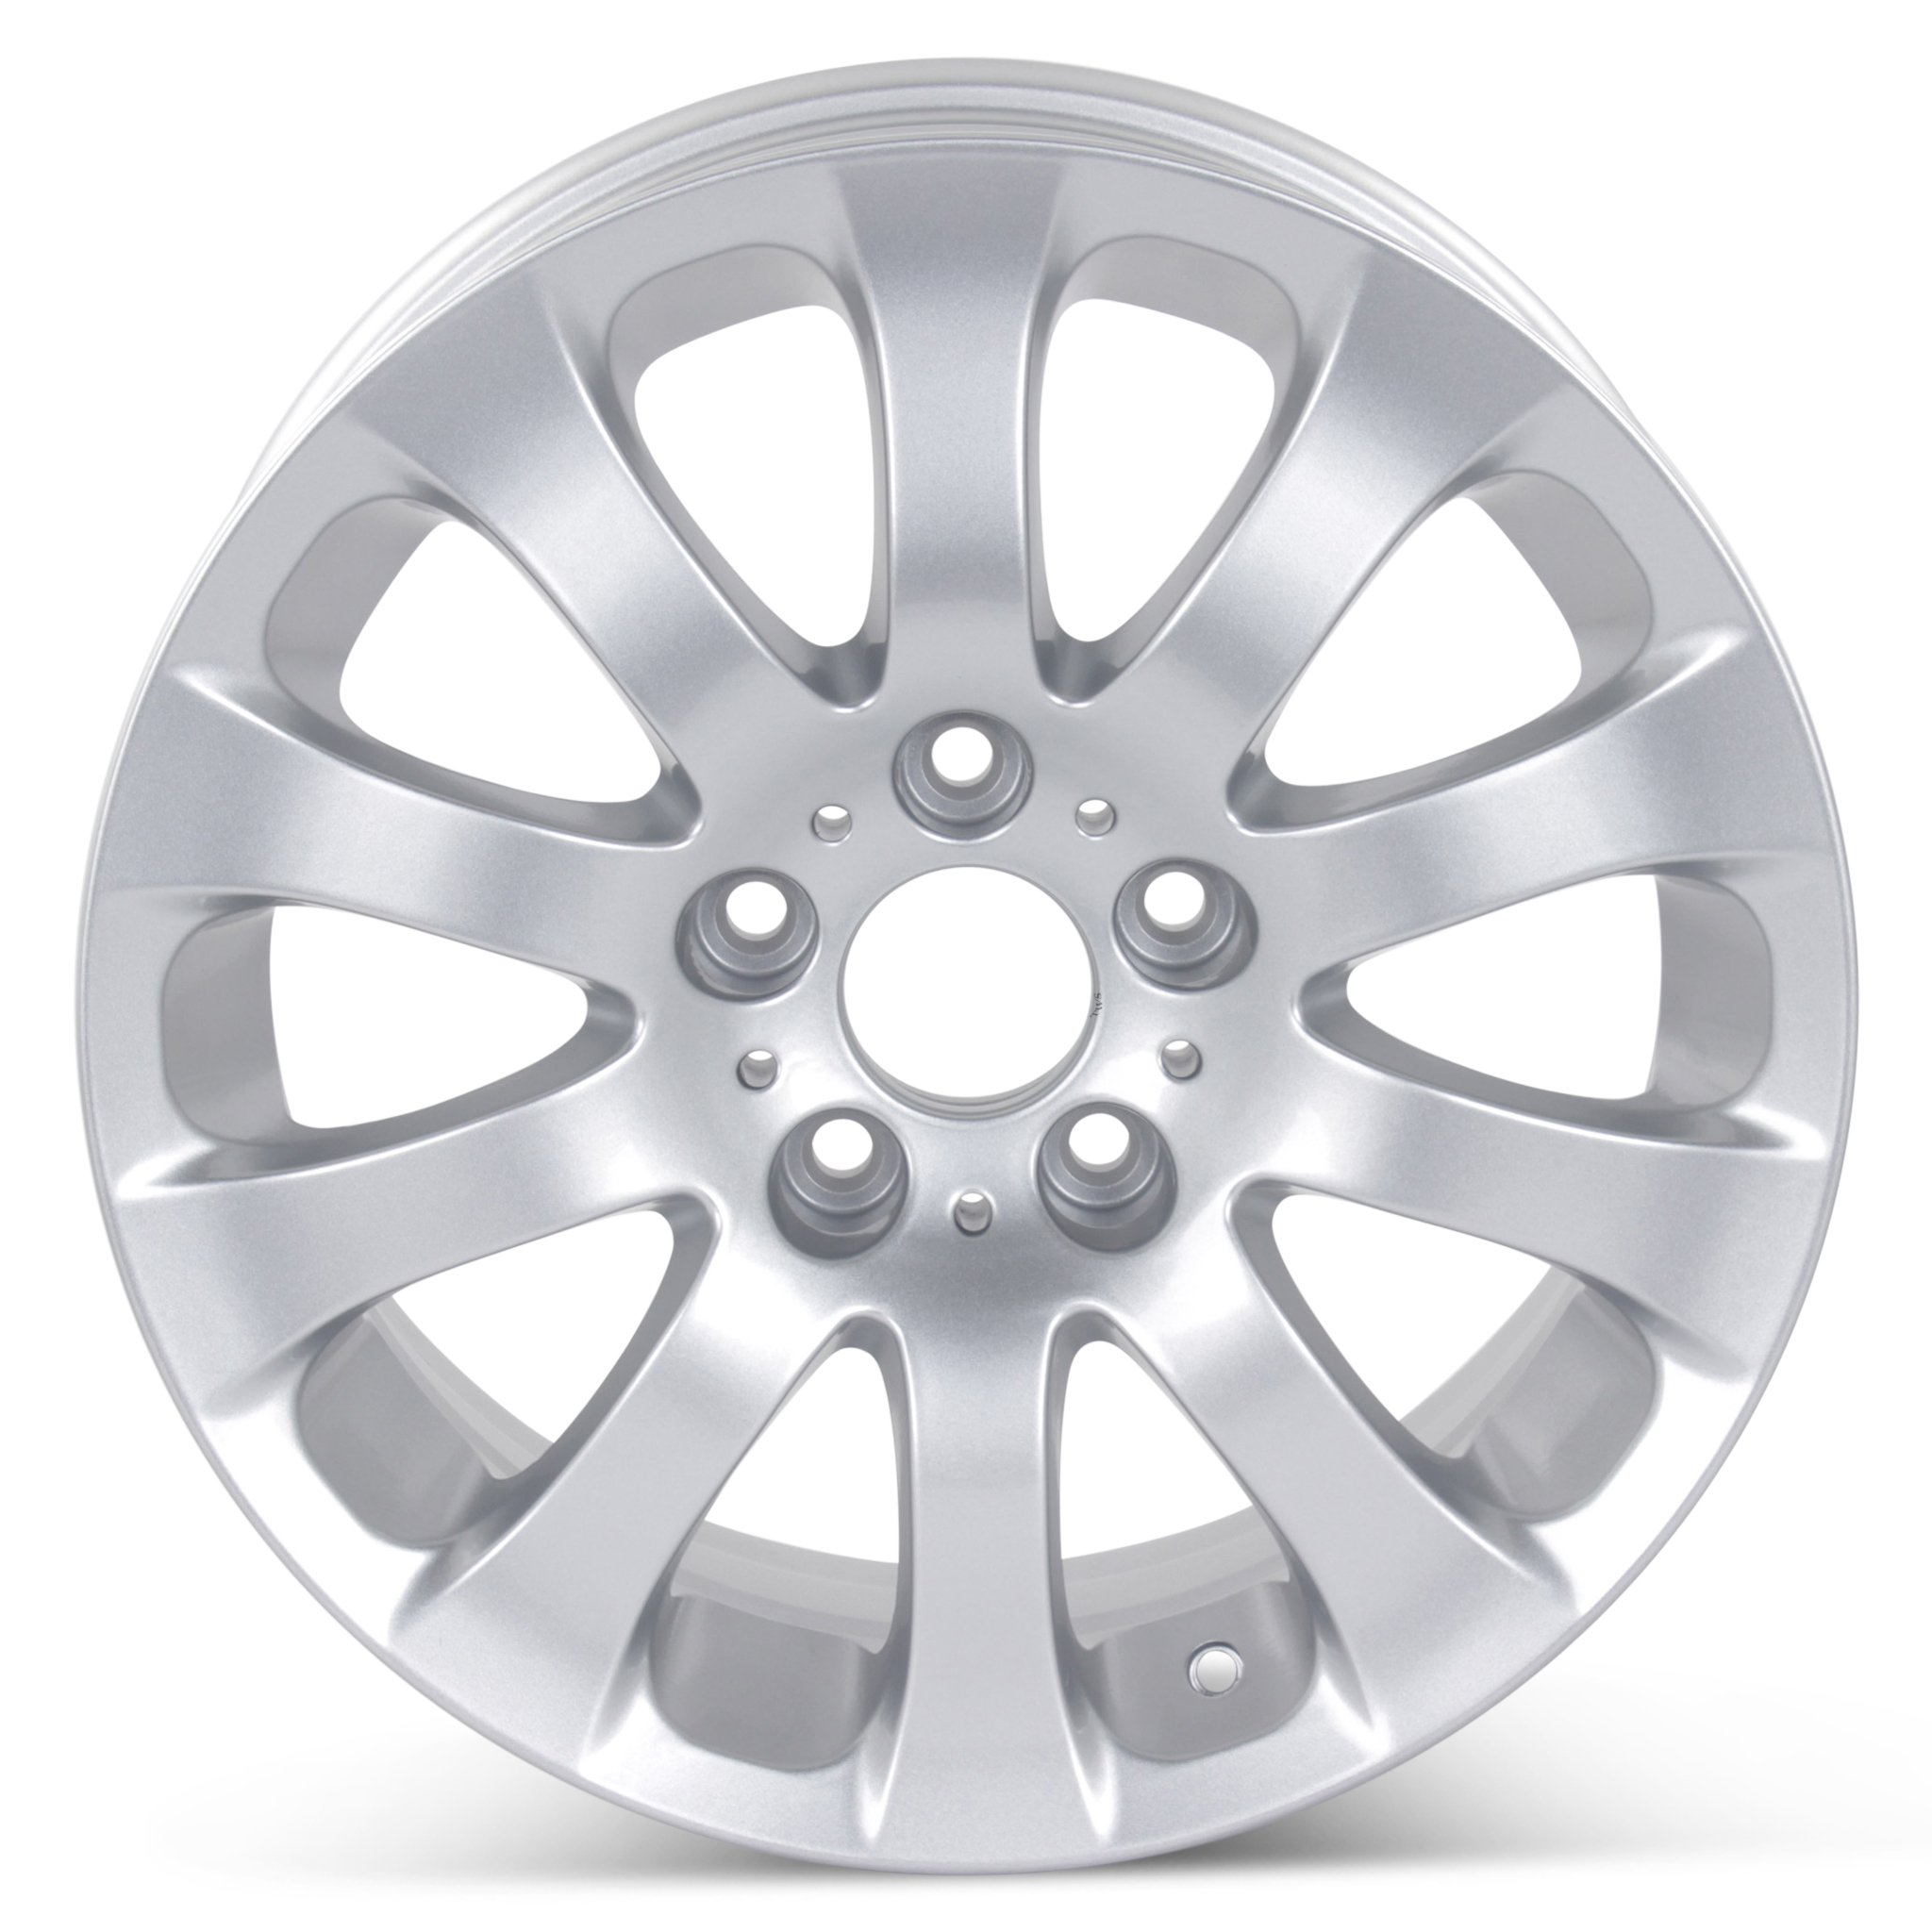 Brand New 17'' x 8'' Replacement Wheel for BMW 3 Series 2006-2013 Rim 59582 by Wheelership (Image #3)